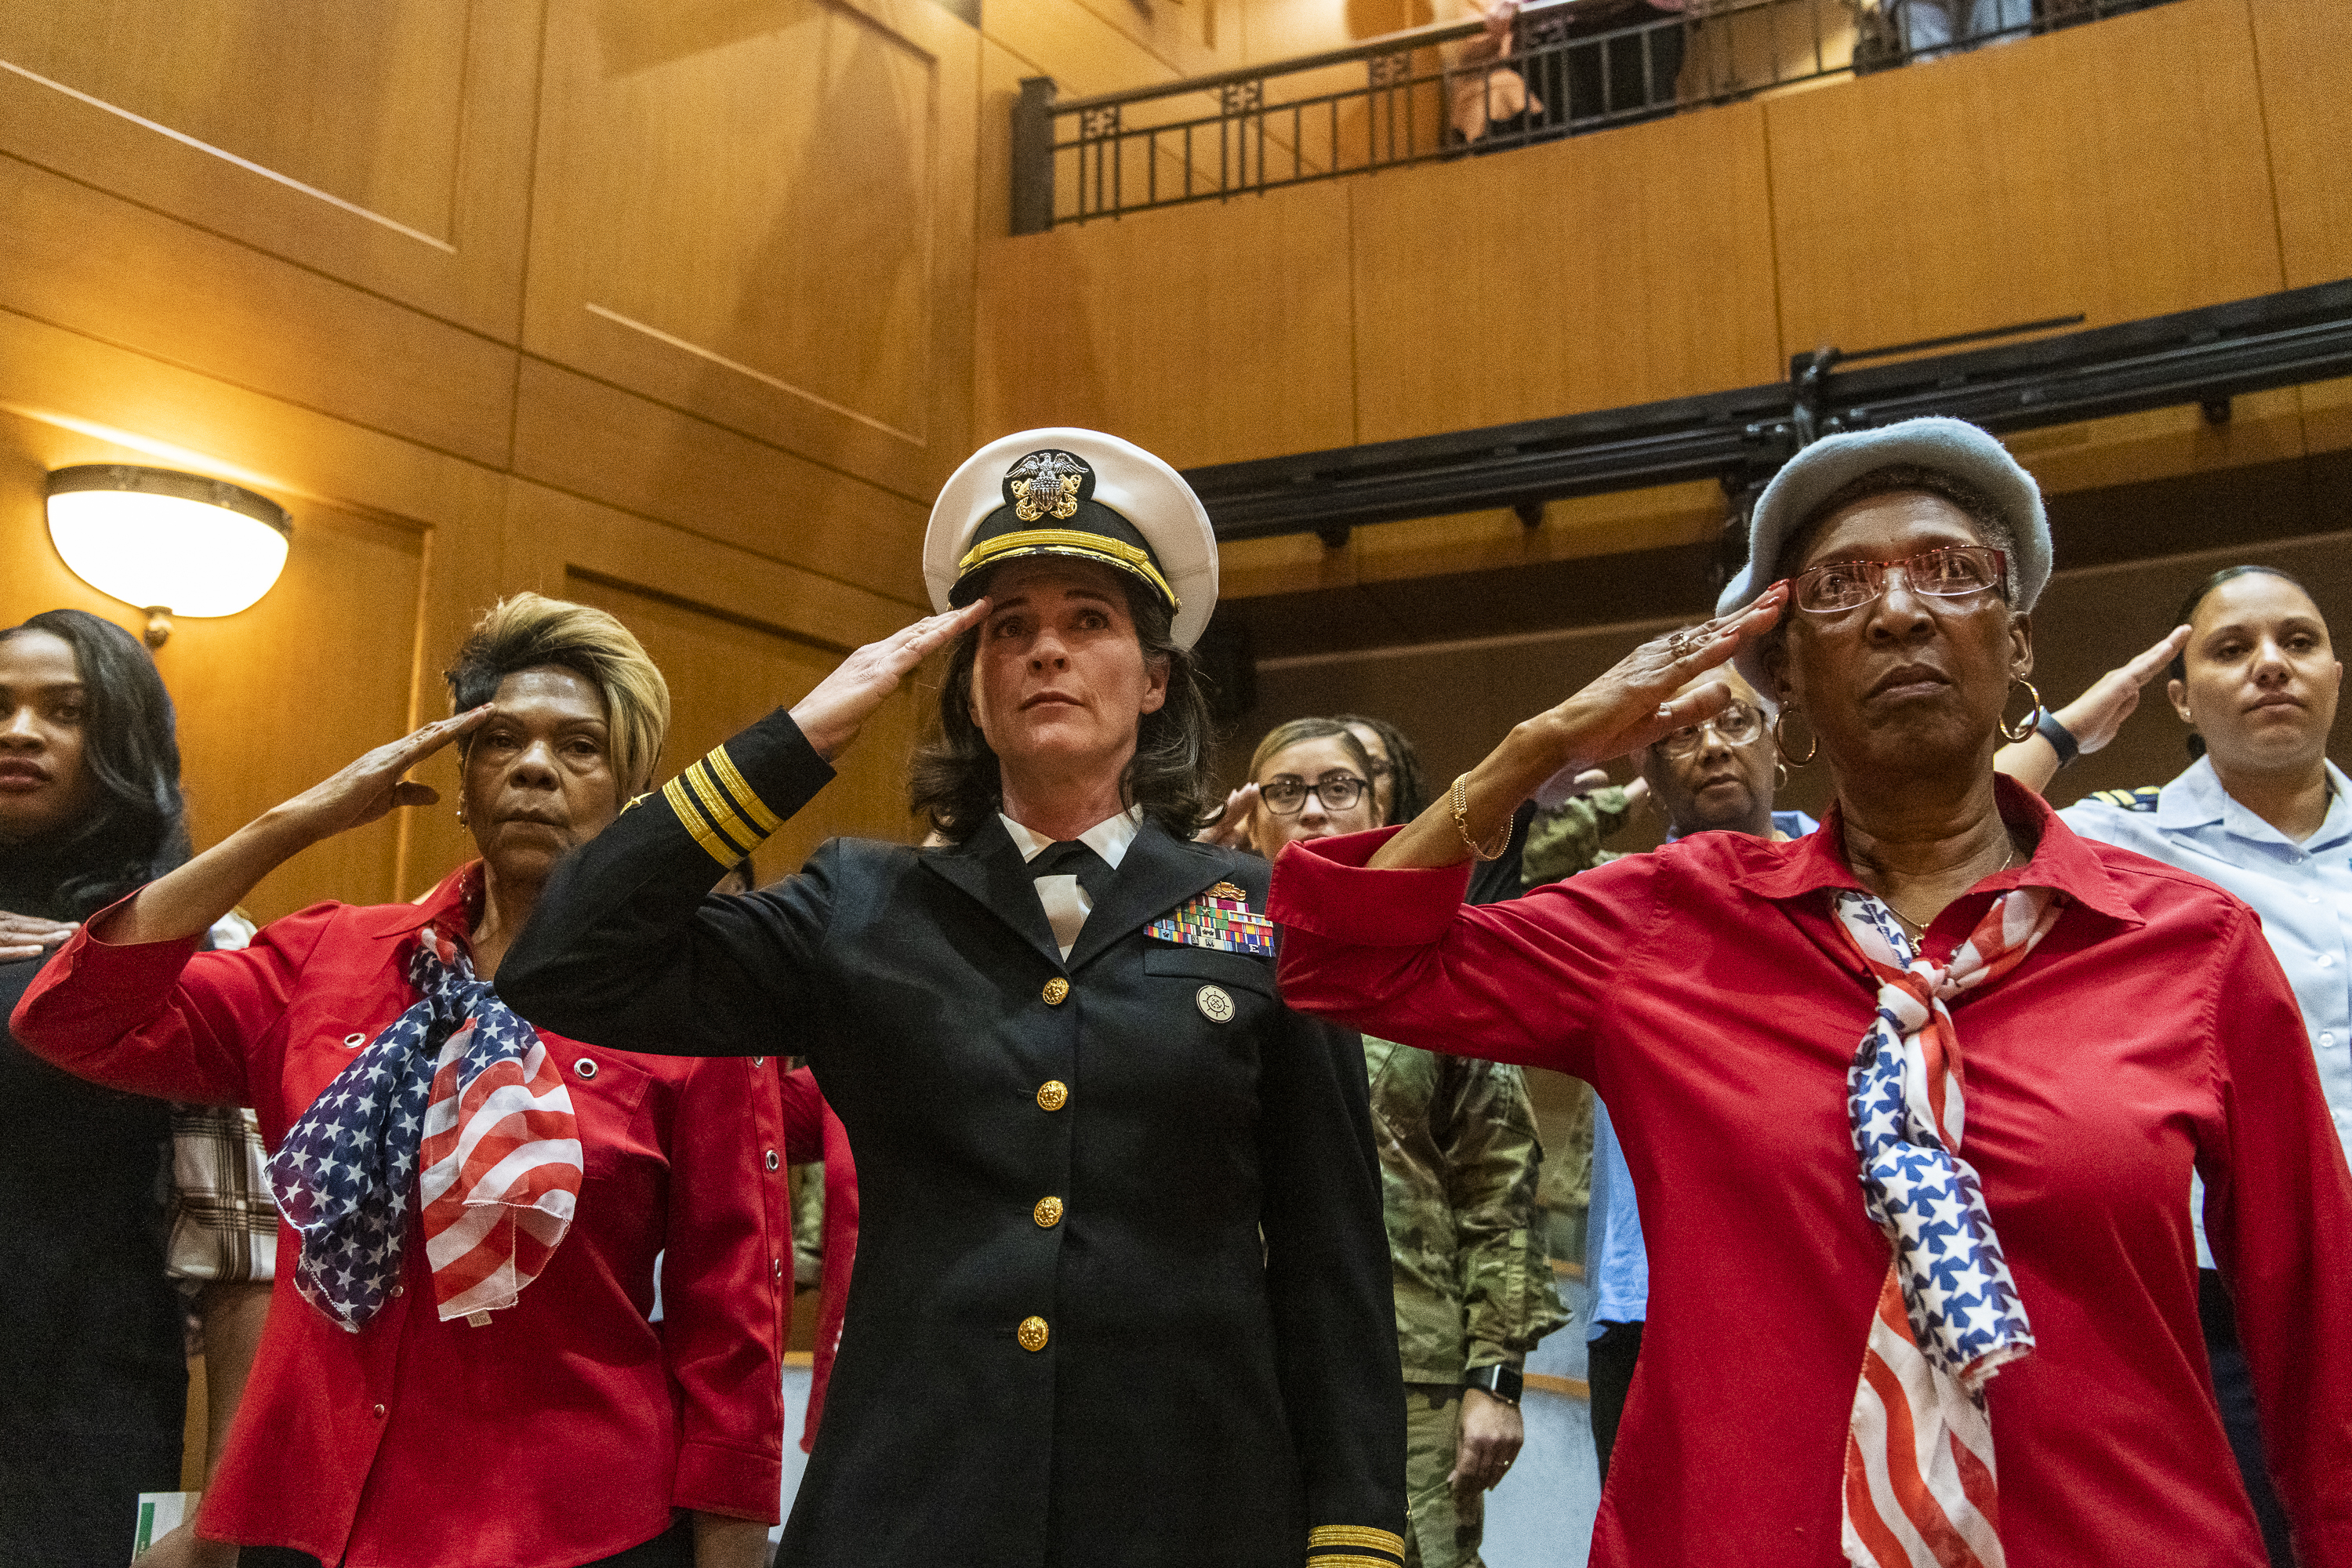 Women veterans of every branch of the U.S. military salute as the national anthem is sung at an auditorium at the Pritzker Military Museum and Library for the announcement of the first all women honor flight to Washington D.C. later this year.